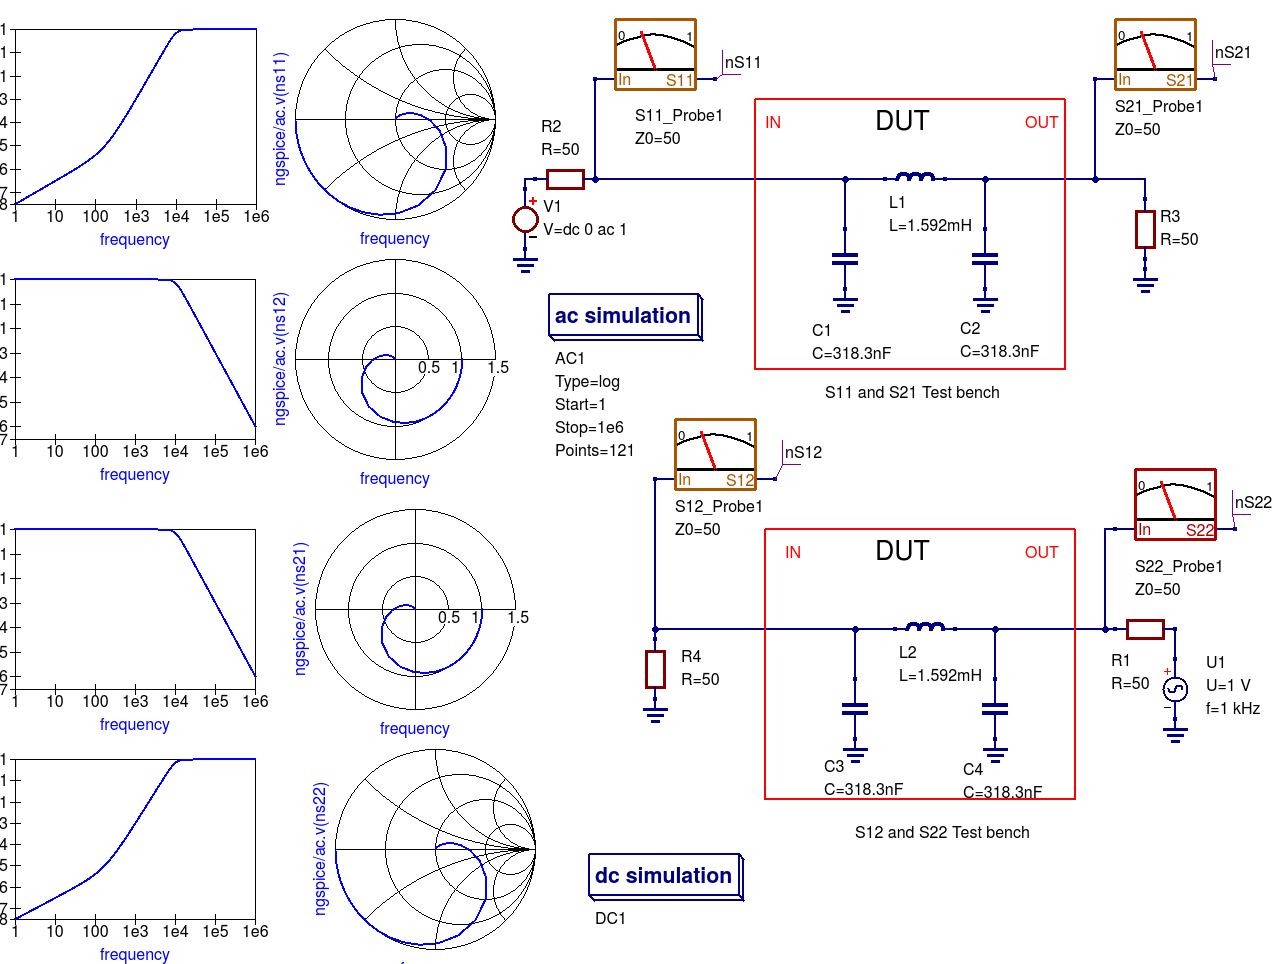 Chapter 13 Rf Simulation With Ngspice Xyce And Spice Opus Qucs S Use Circuit Builder Software To Construct Both Circuits In Figure Small Signal S2 En